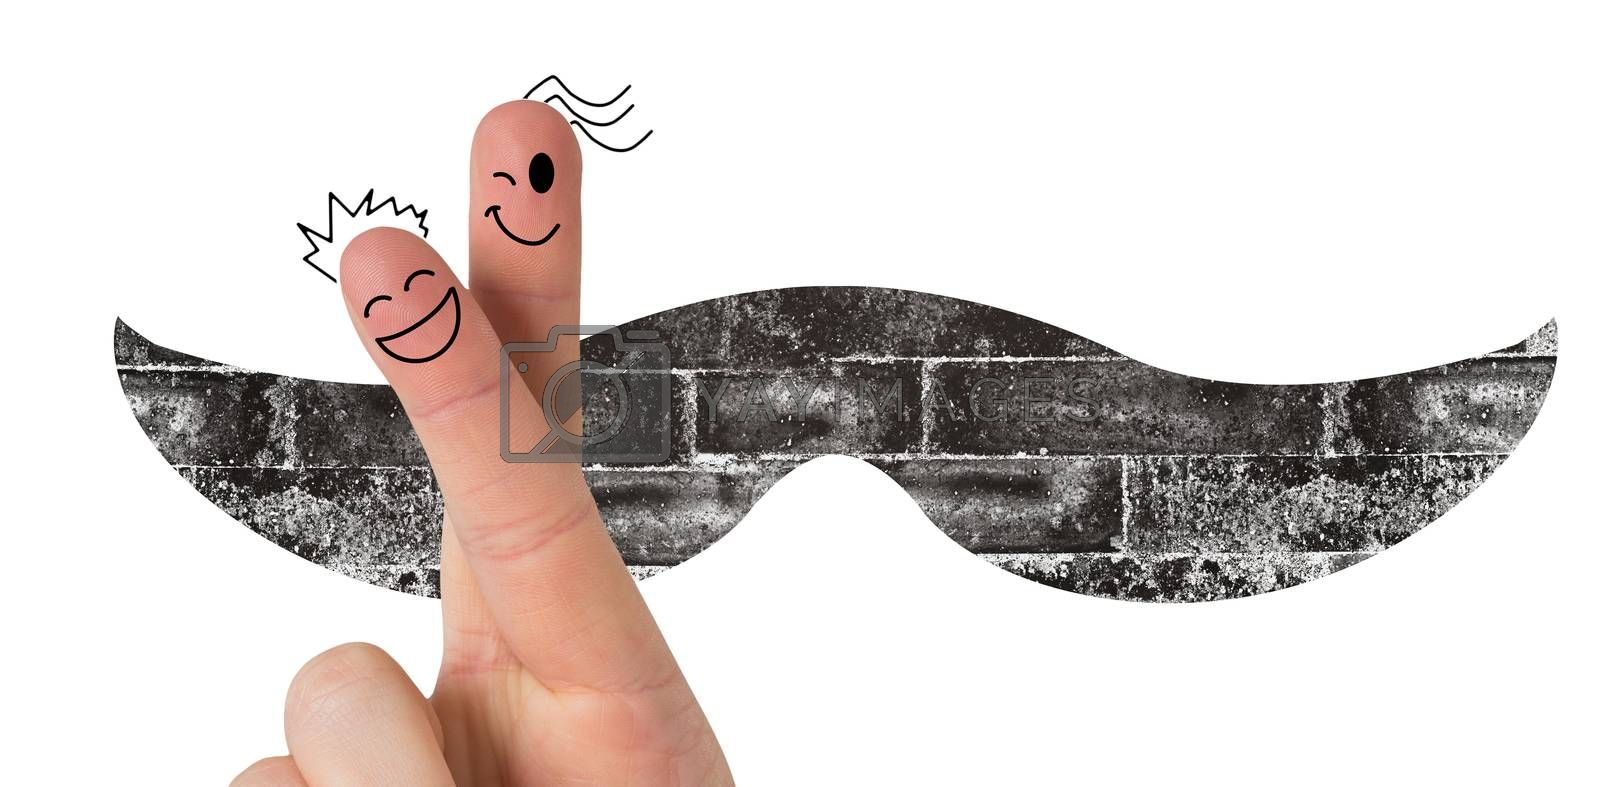 Fingers with face against icon of a mustache